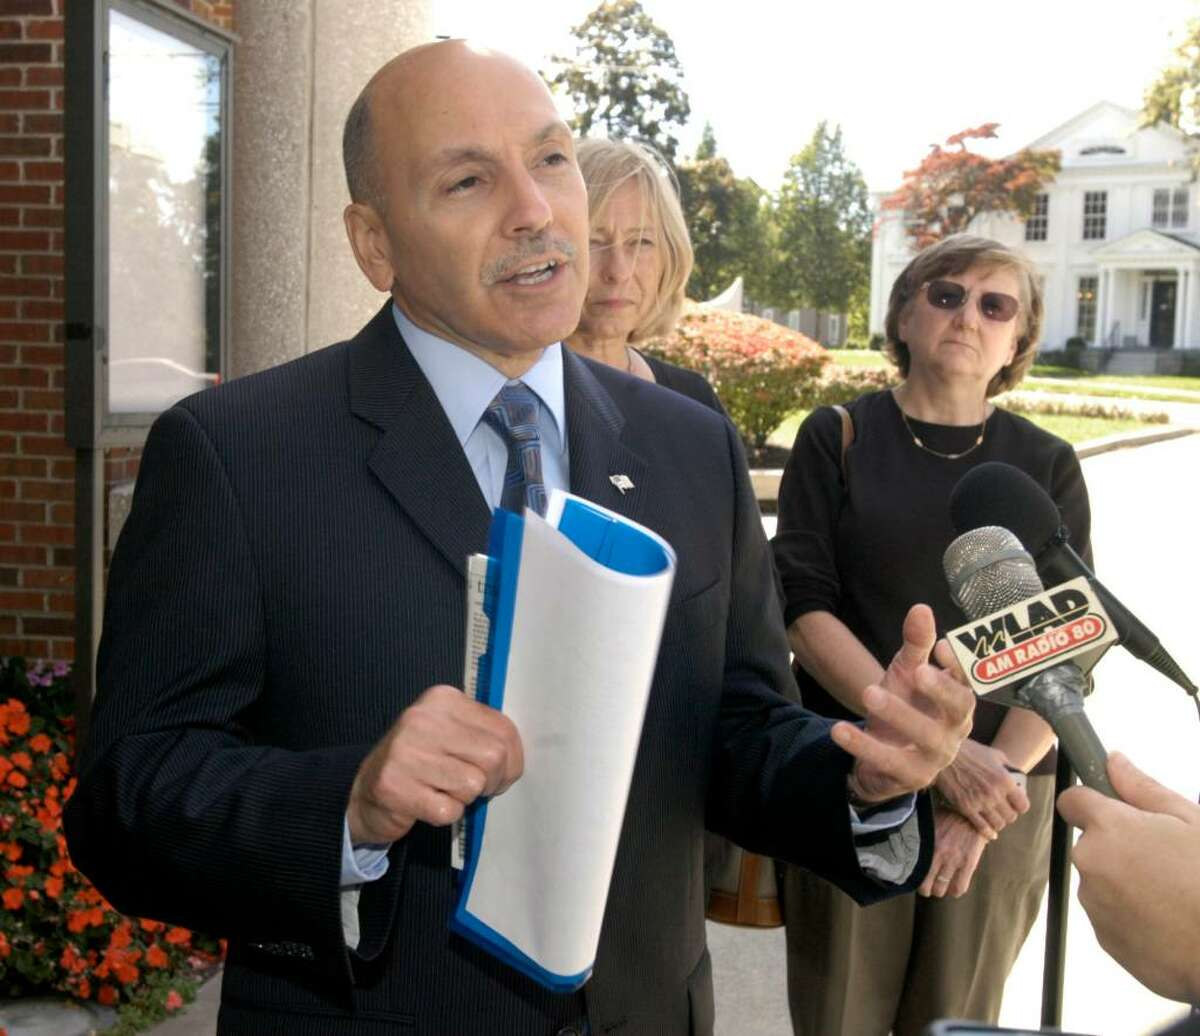 Gary Goncalves, Democratic candidate for Mayor in Danbury, left holds a press conference outside of City Hall Friday, Sept. 25, 2009. With him are Barbara Carey, right, Democratic candidate for the Common Council in the 3rd Ward and Eileen Coladarci, candidate for City Clerk.